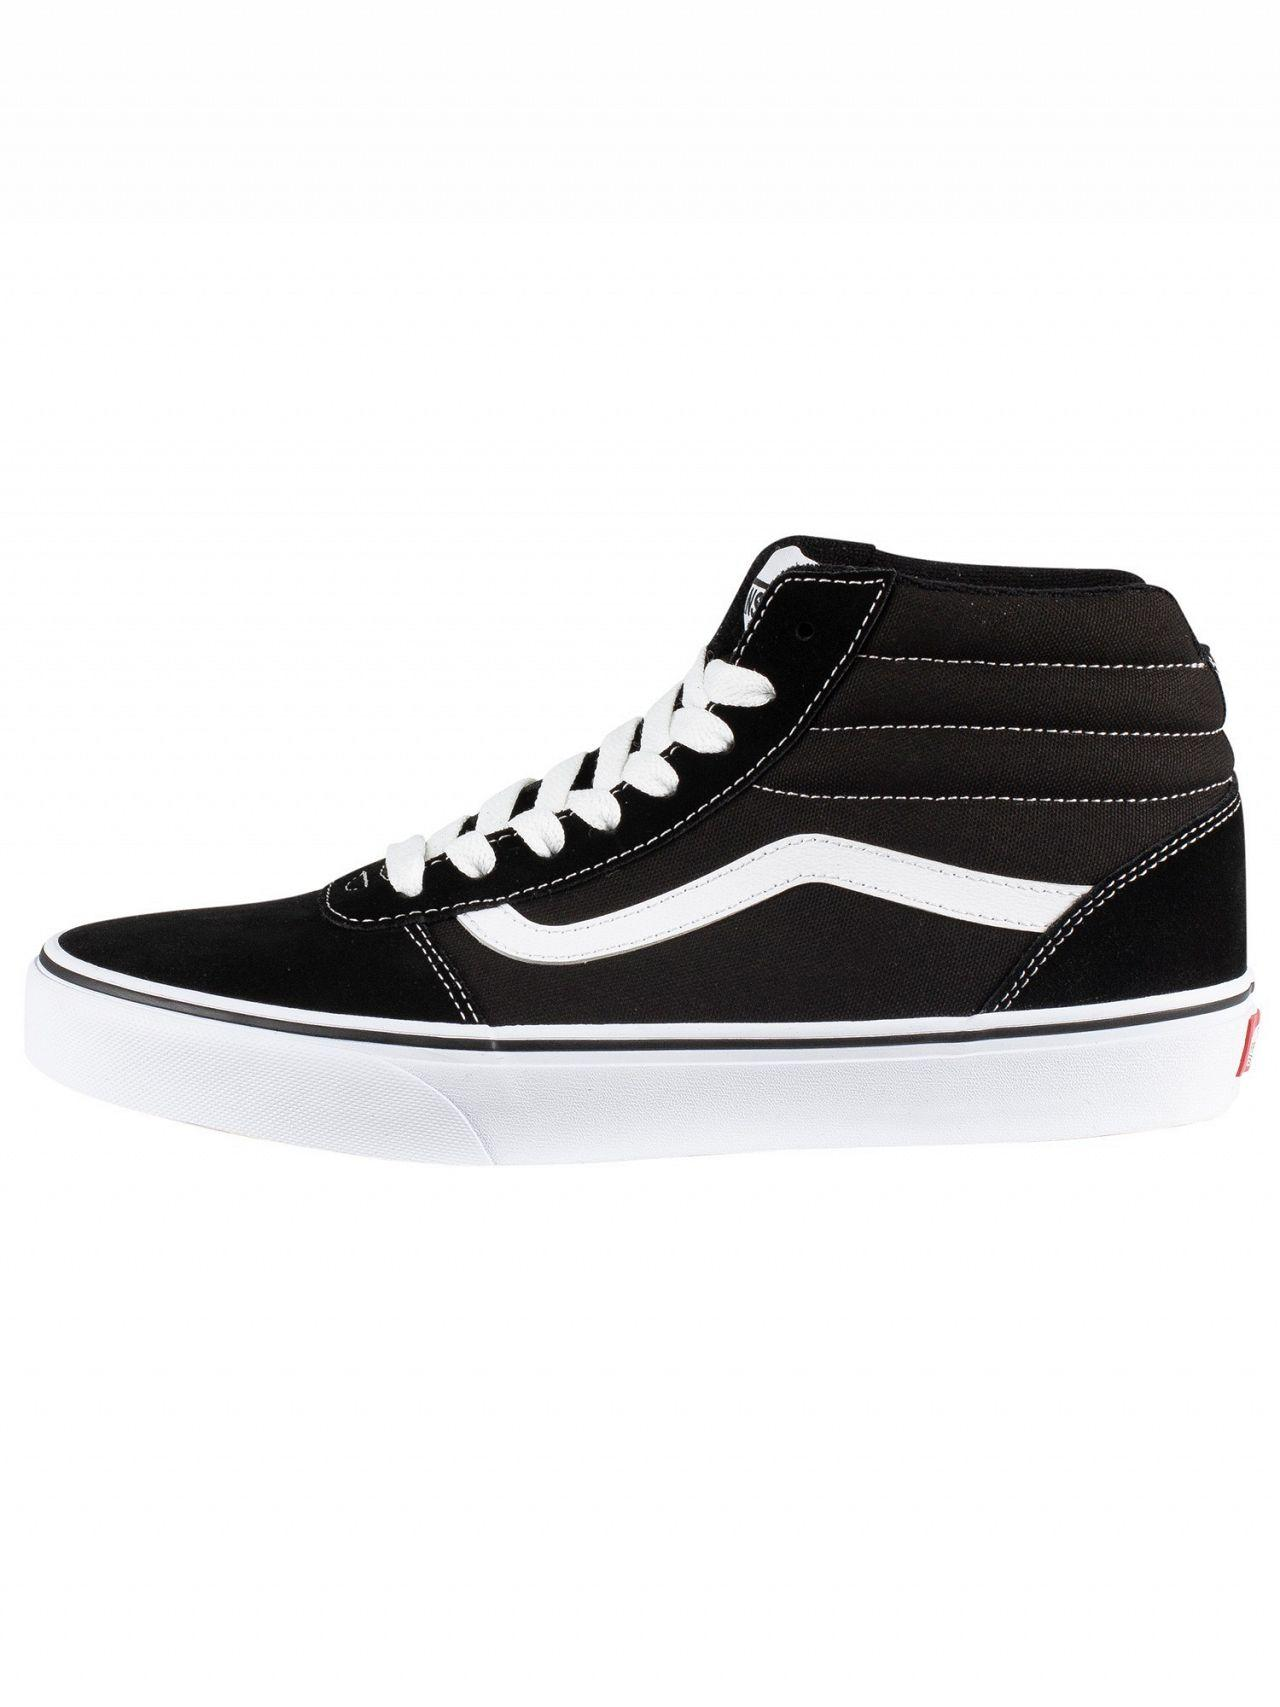 b04548090087 Vans - Black white Ward Hi Suede Canvas Trainers for Men - Lyst. View  fullscreen